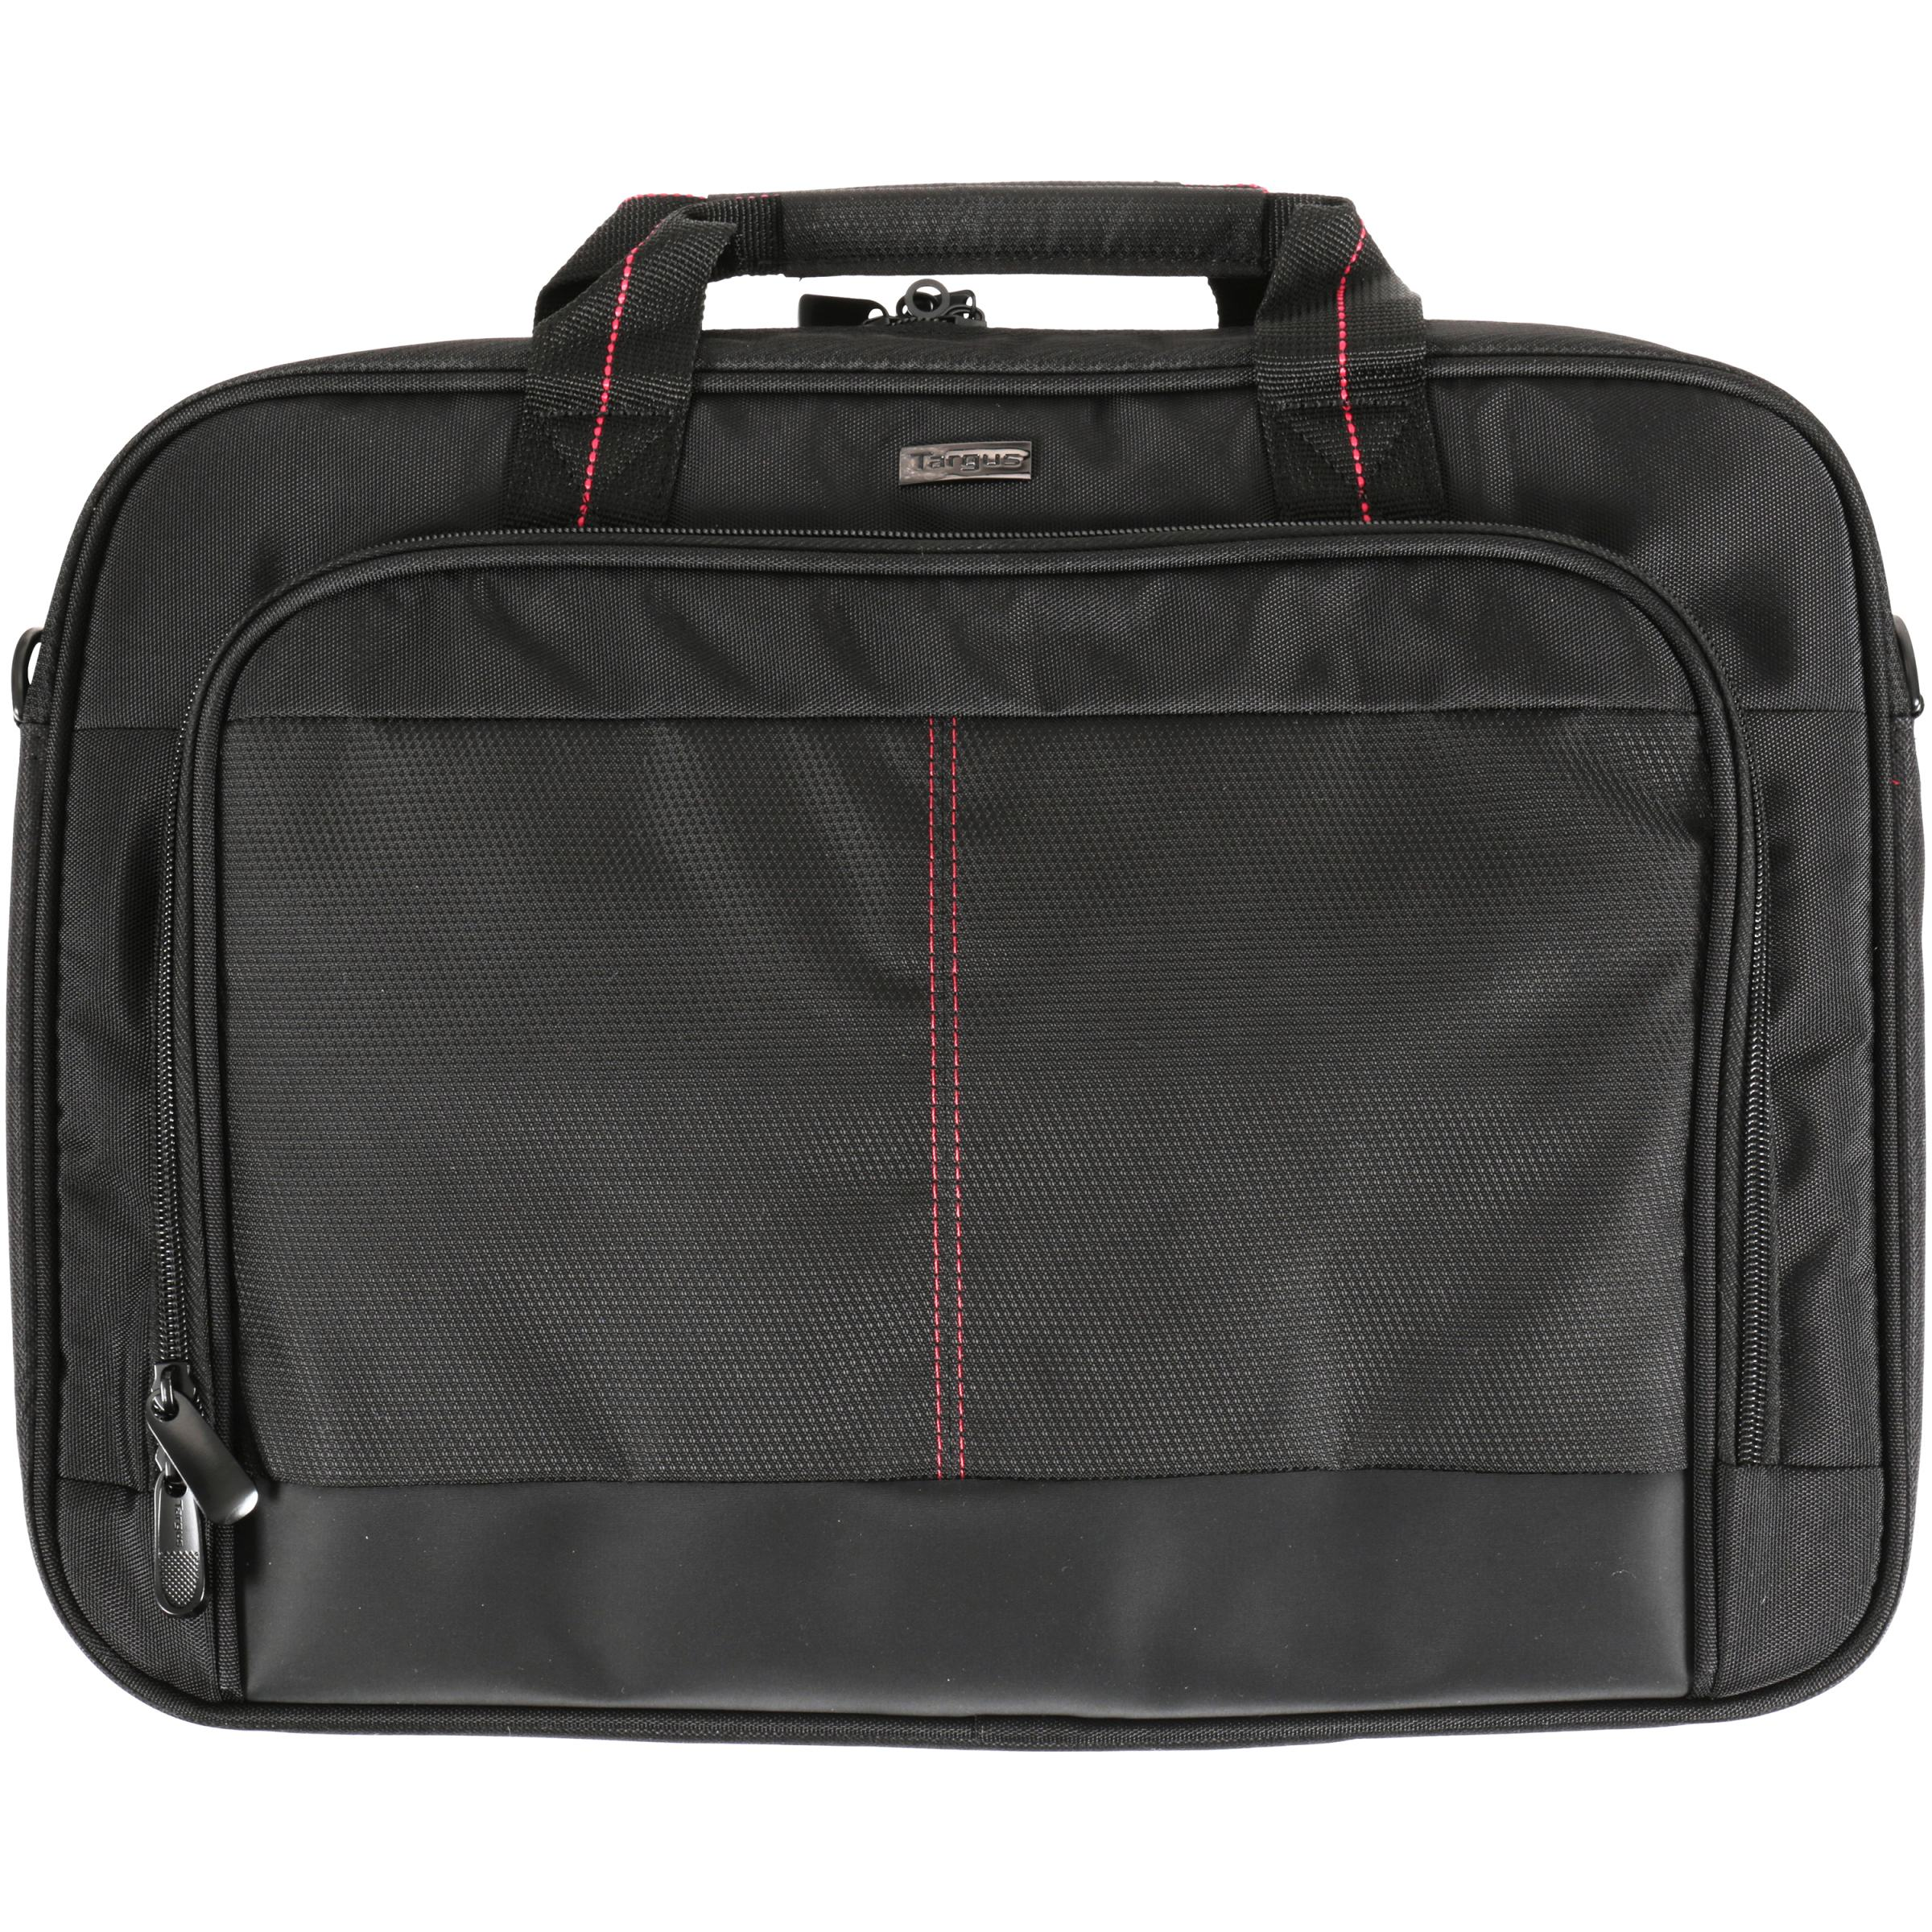 "Targus Topload Case for 16"" Laptops"